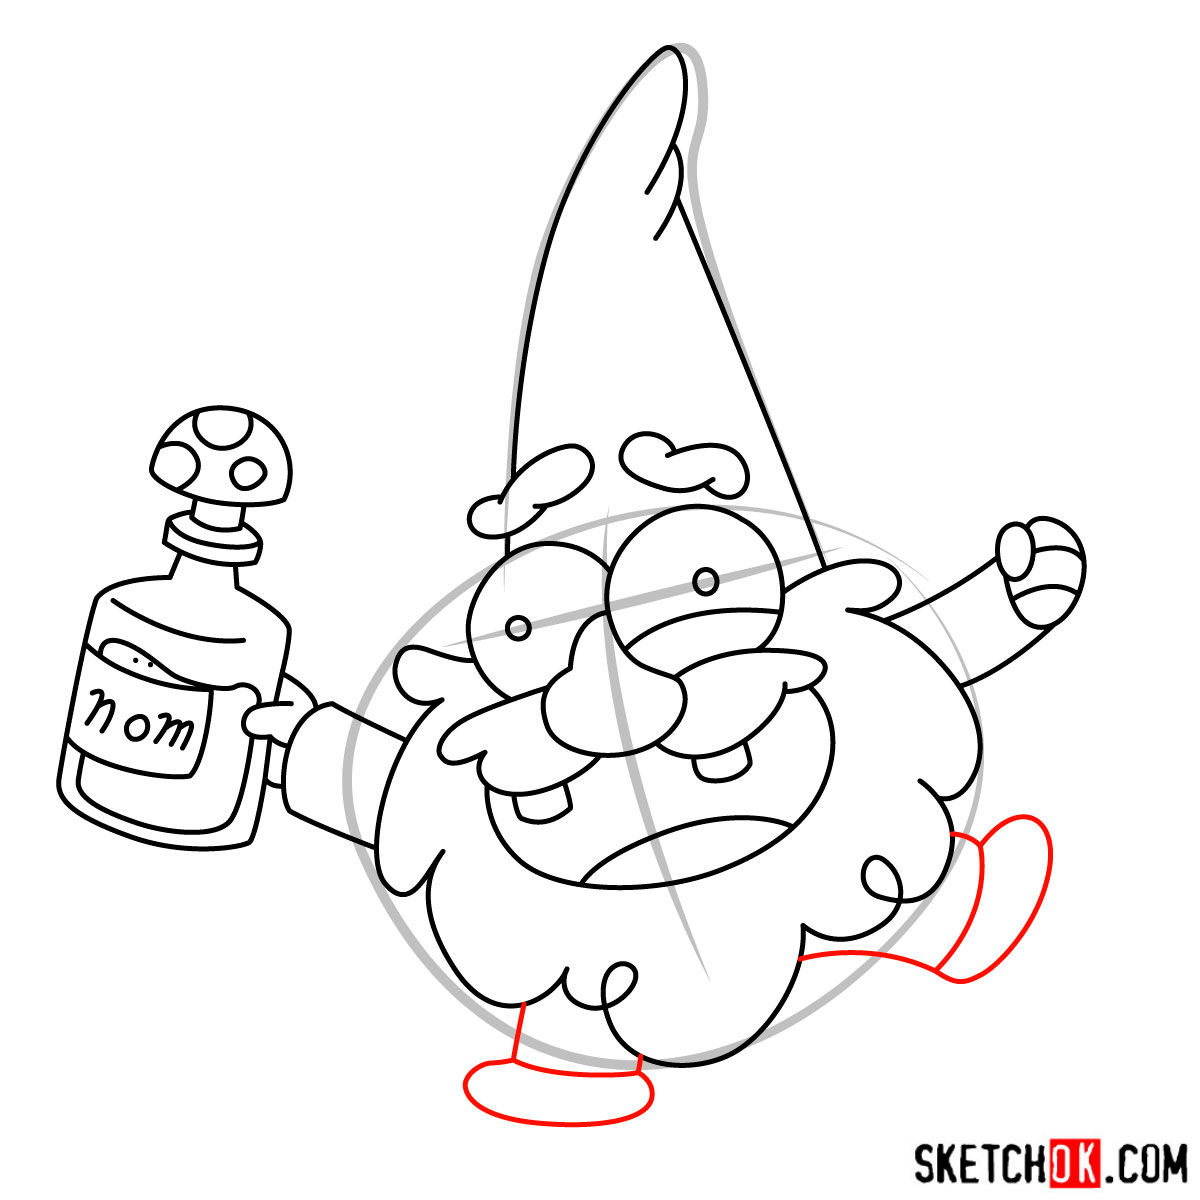 How to draw Gnome from Gravity Falls - step 08